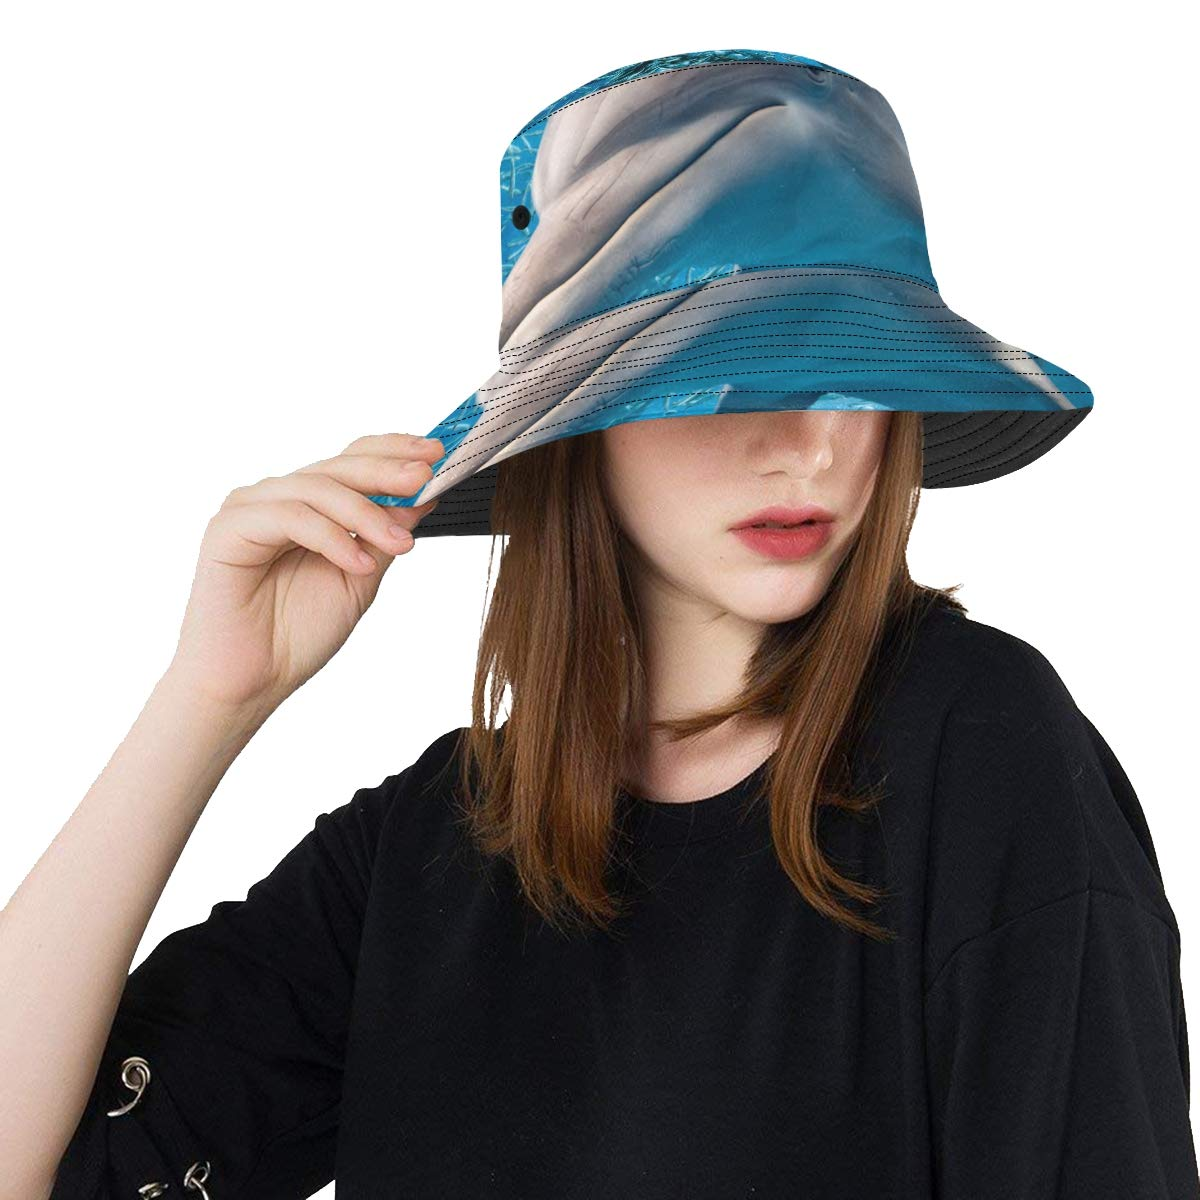 Women and Men with Customize Top Packable Fisherman Cap for Outdoor Travel Jumping Happy Excited Dolphin New Summer Unisex Cotton Fashion Fishing Sun Bucket Hats for Kid Teens